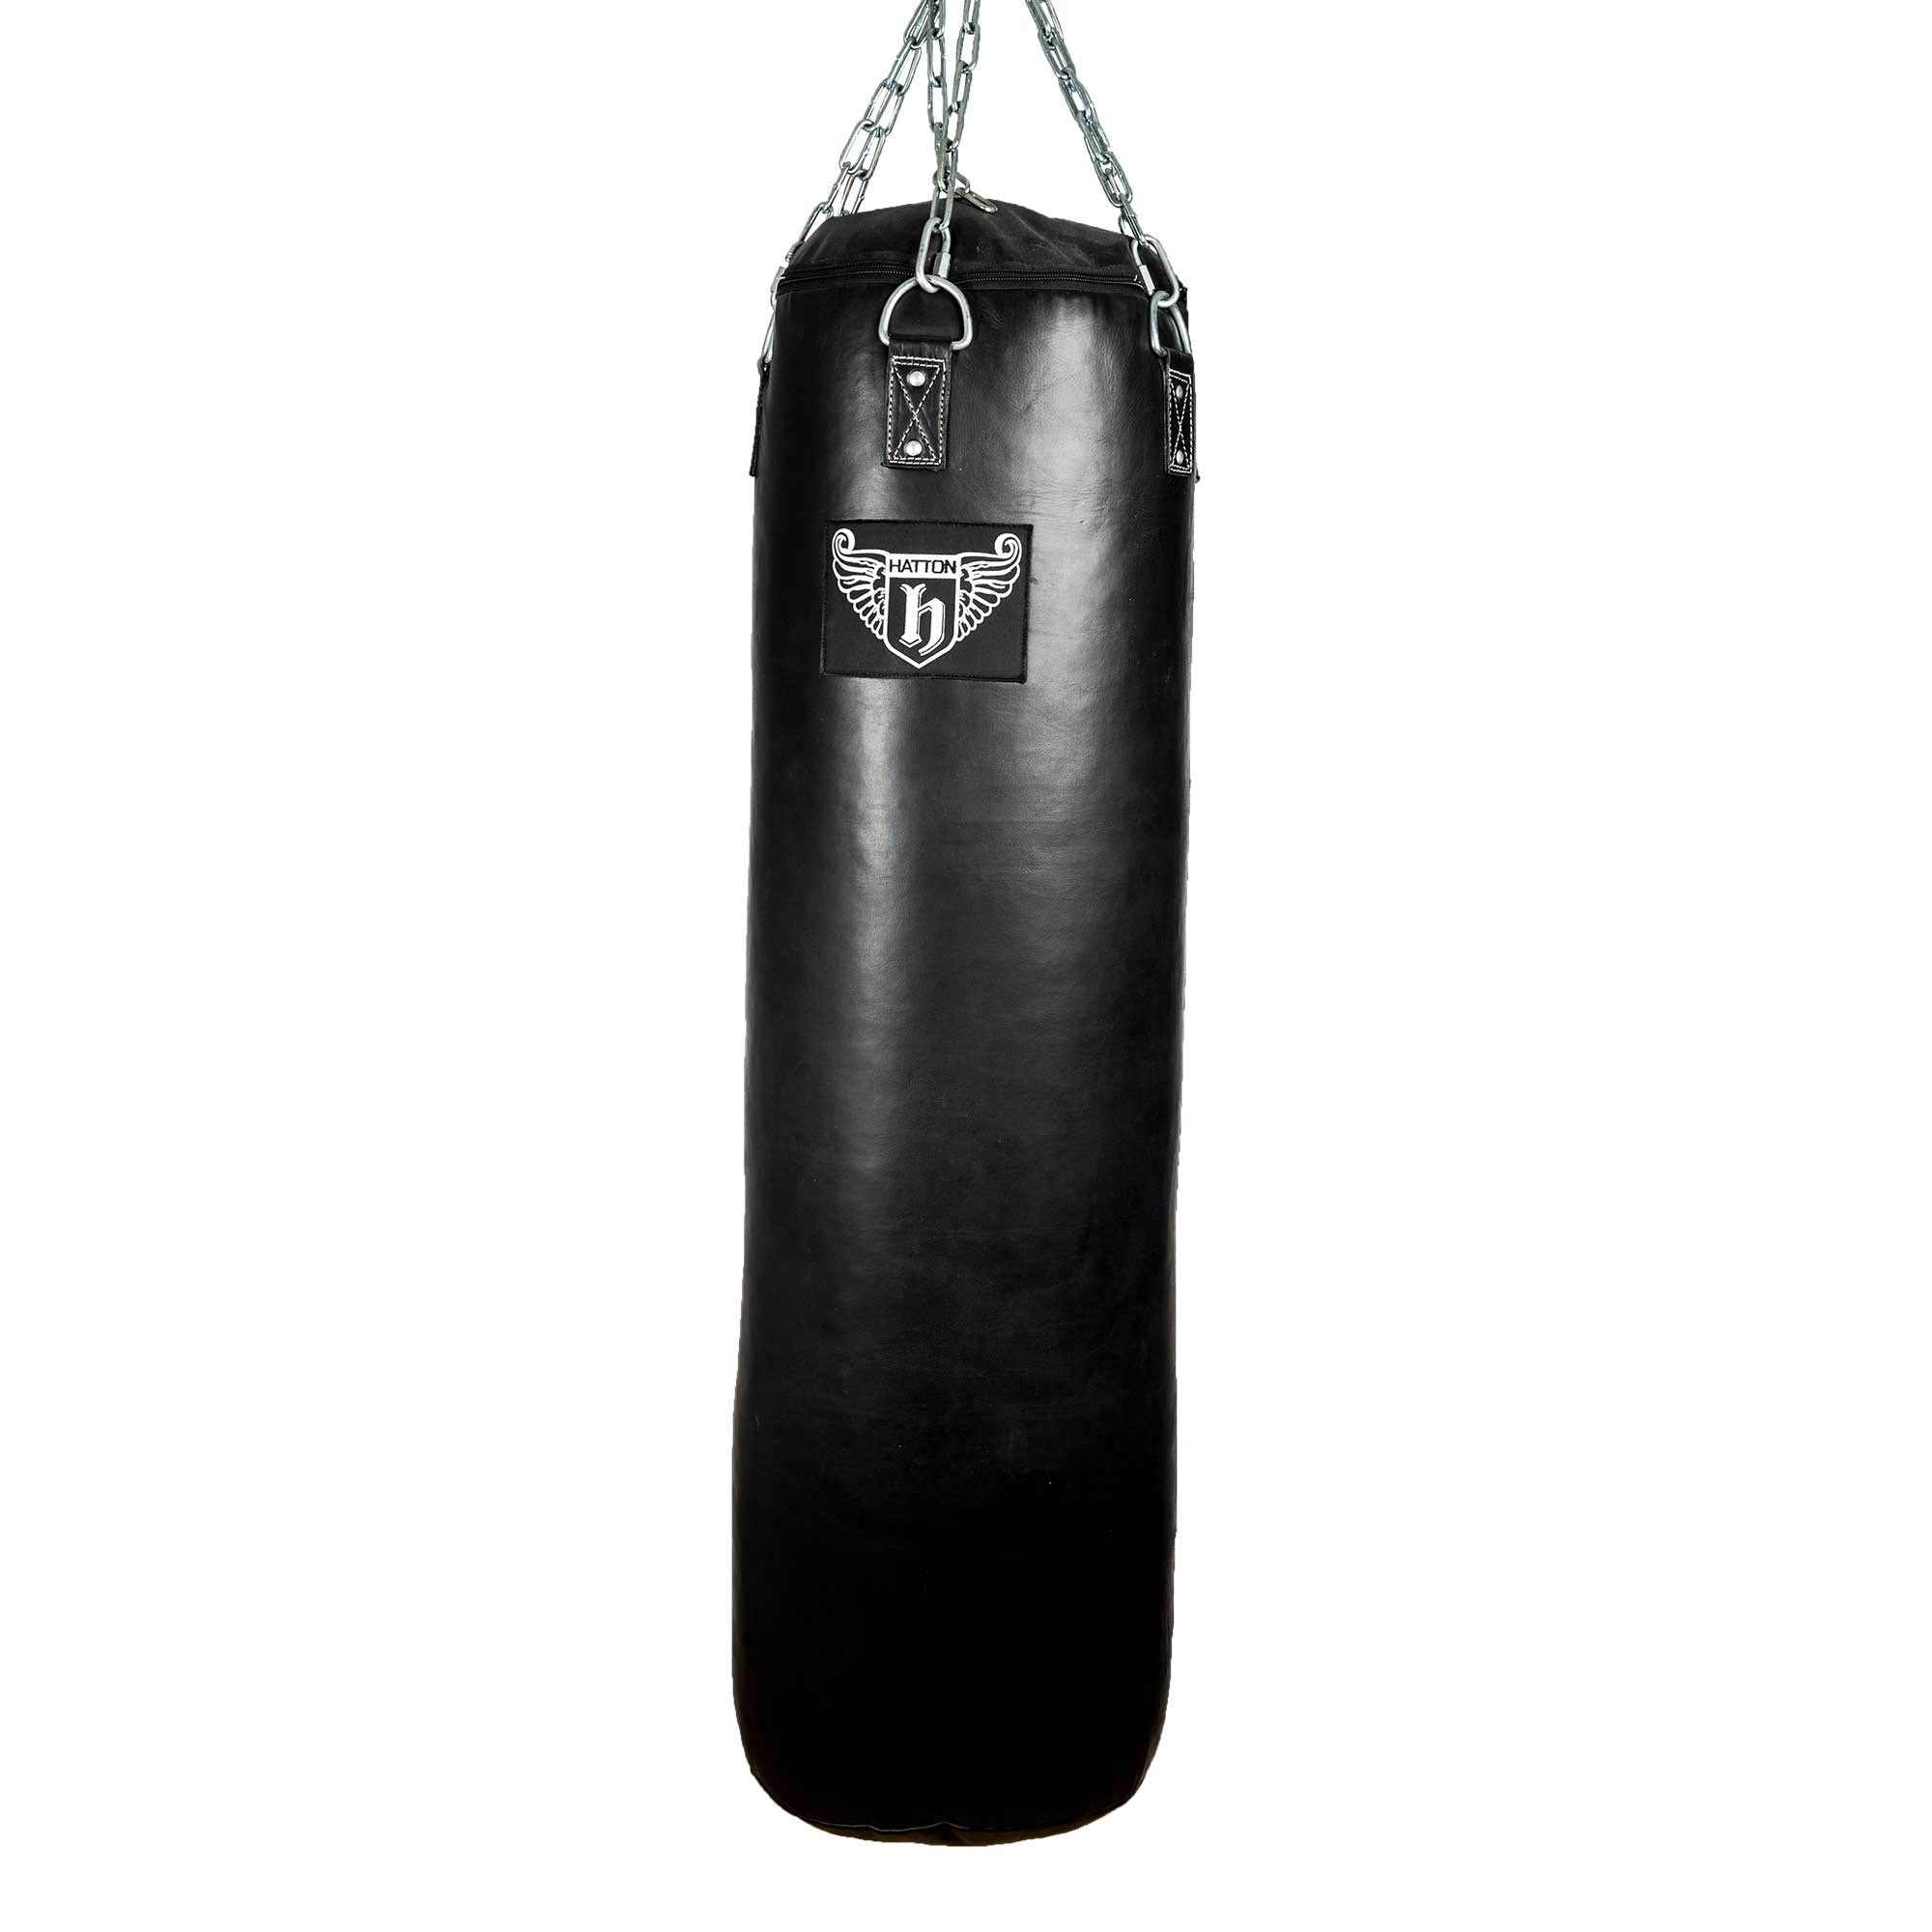 What are punching bags?